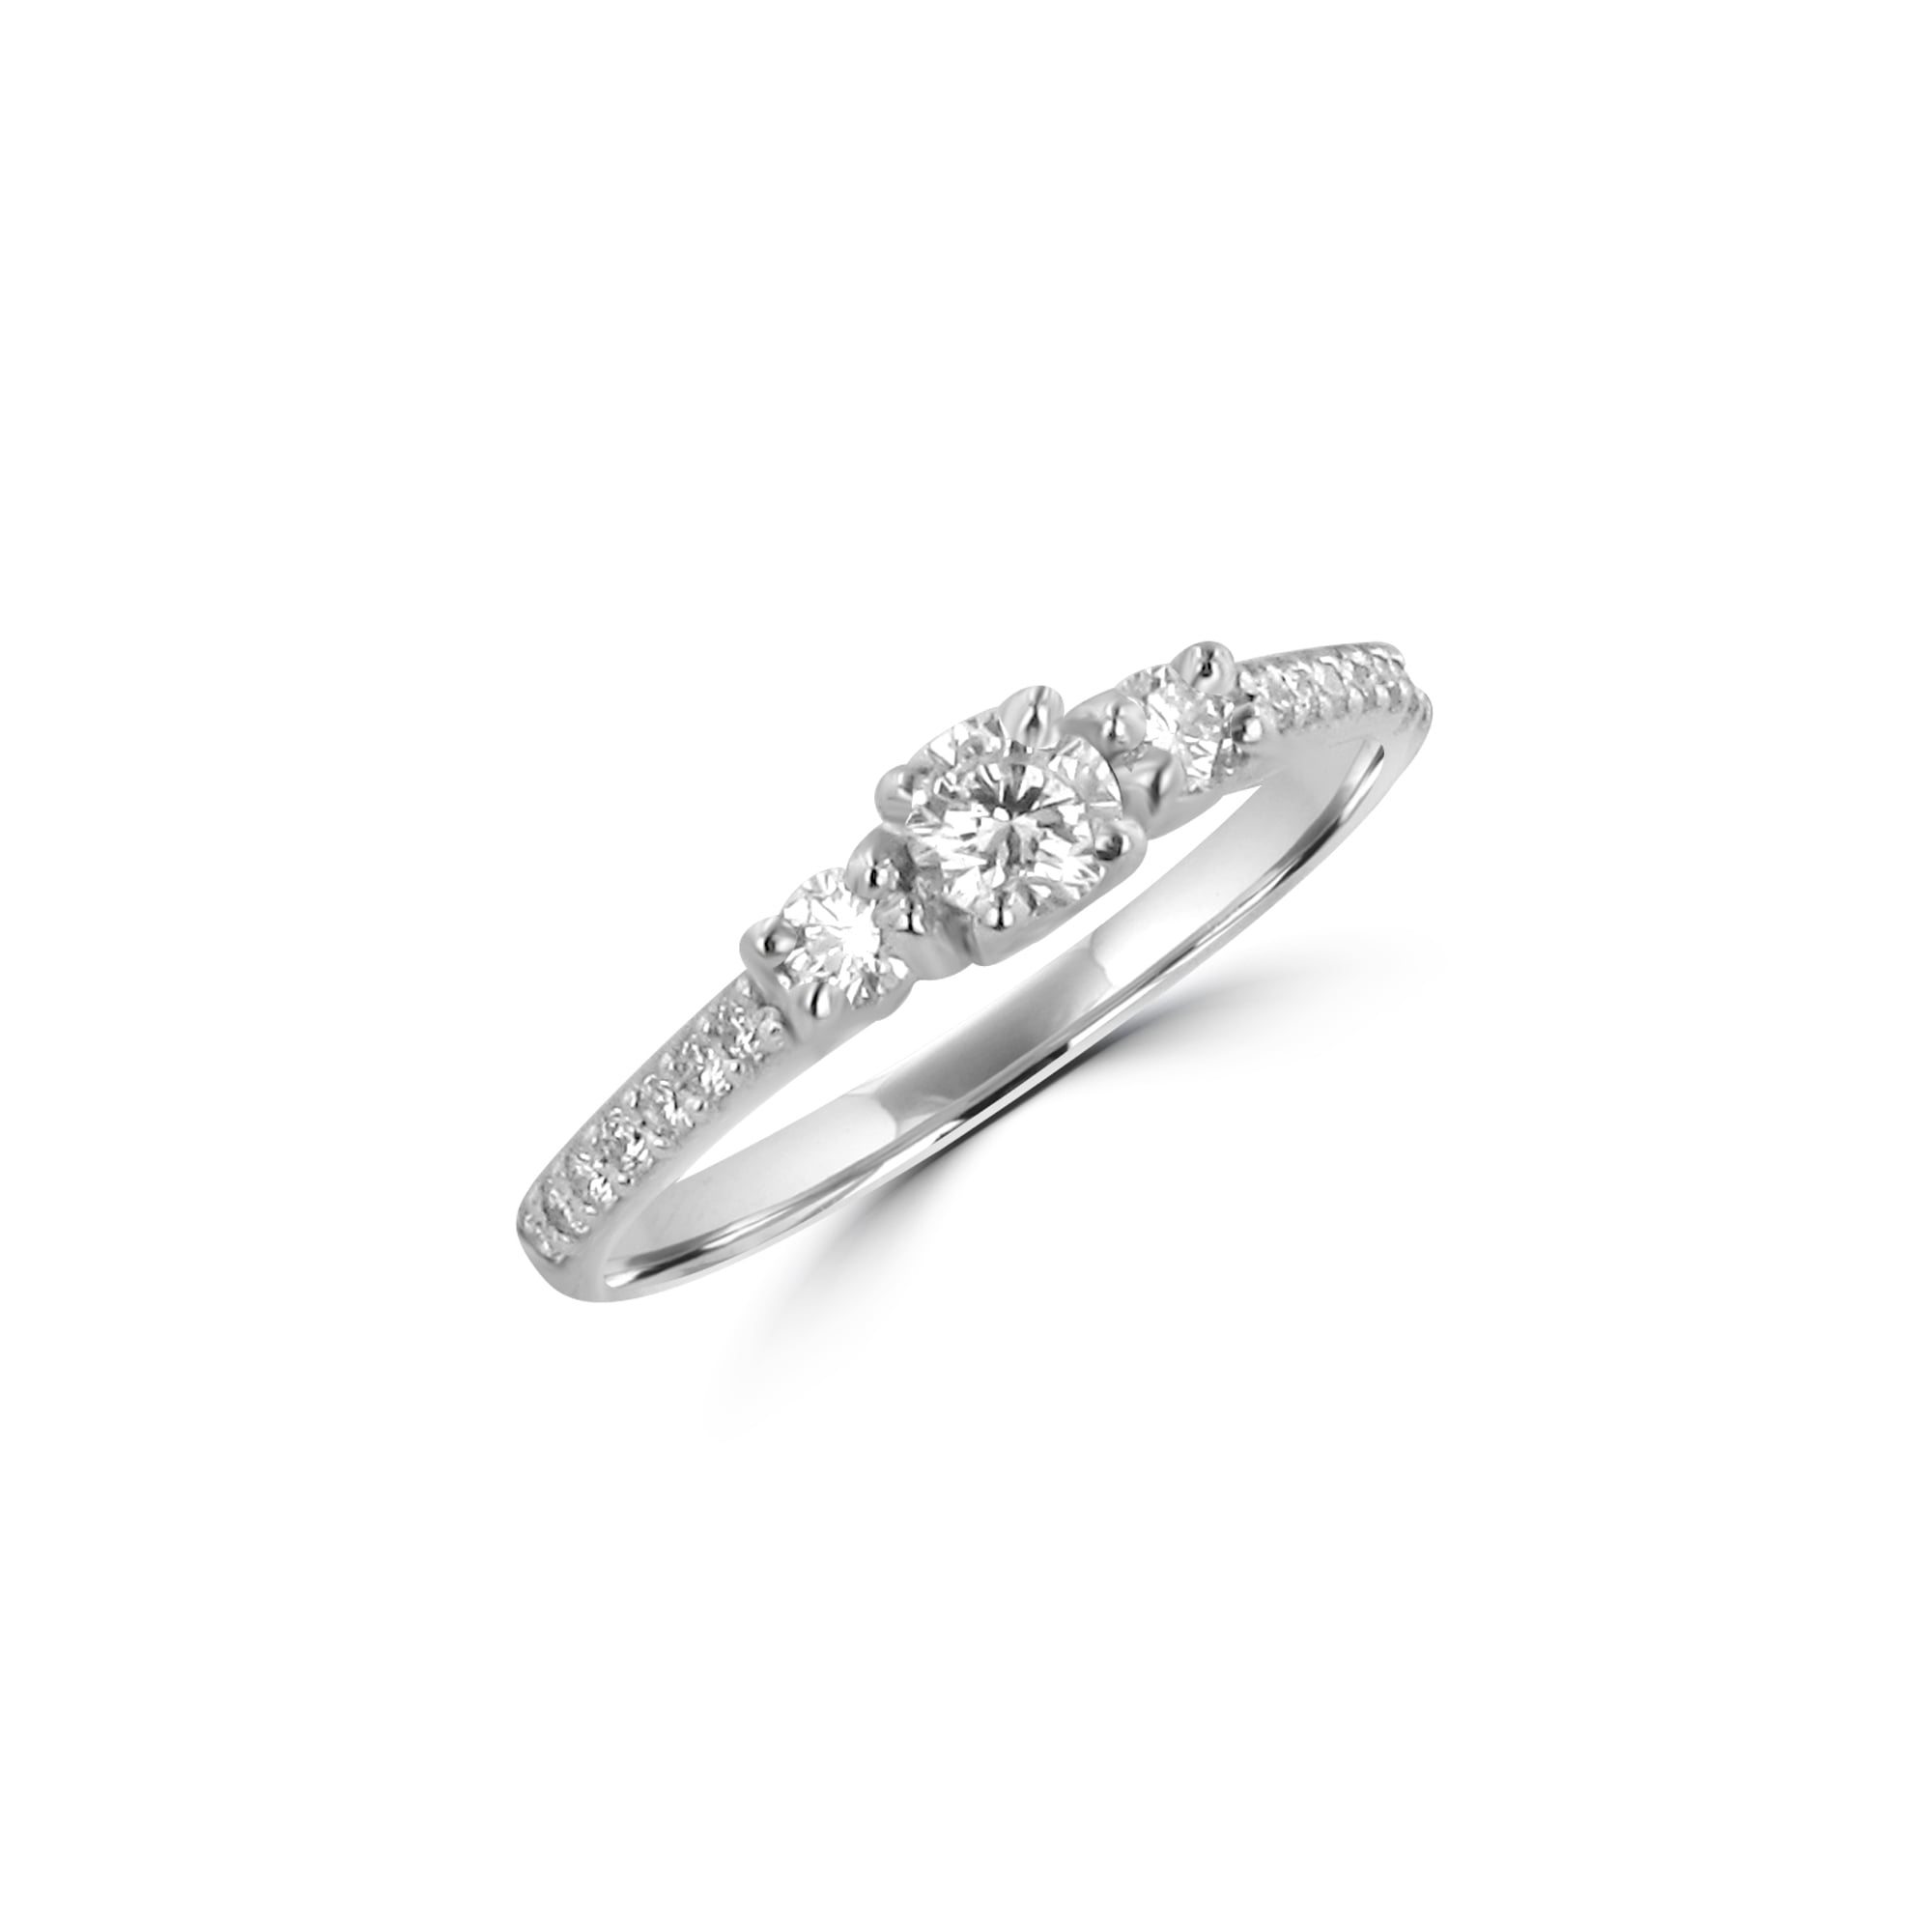 keezing shank pave kreations diamond three engagement jewellery gallery stone with detail platinum project ring diamonds